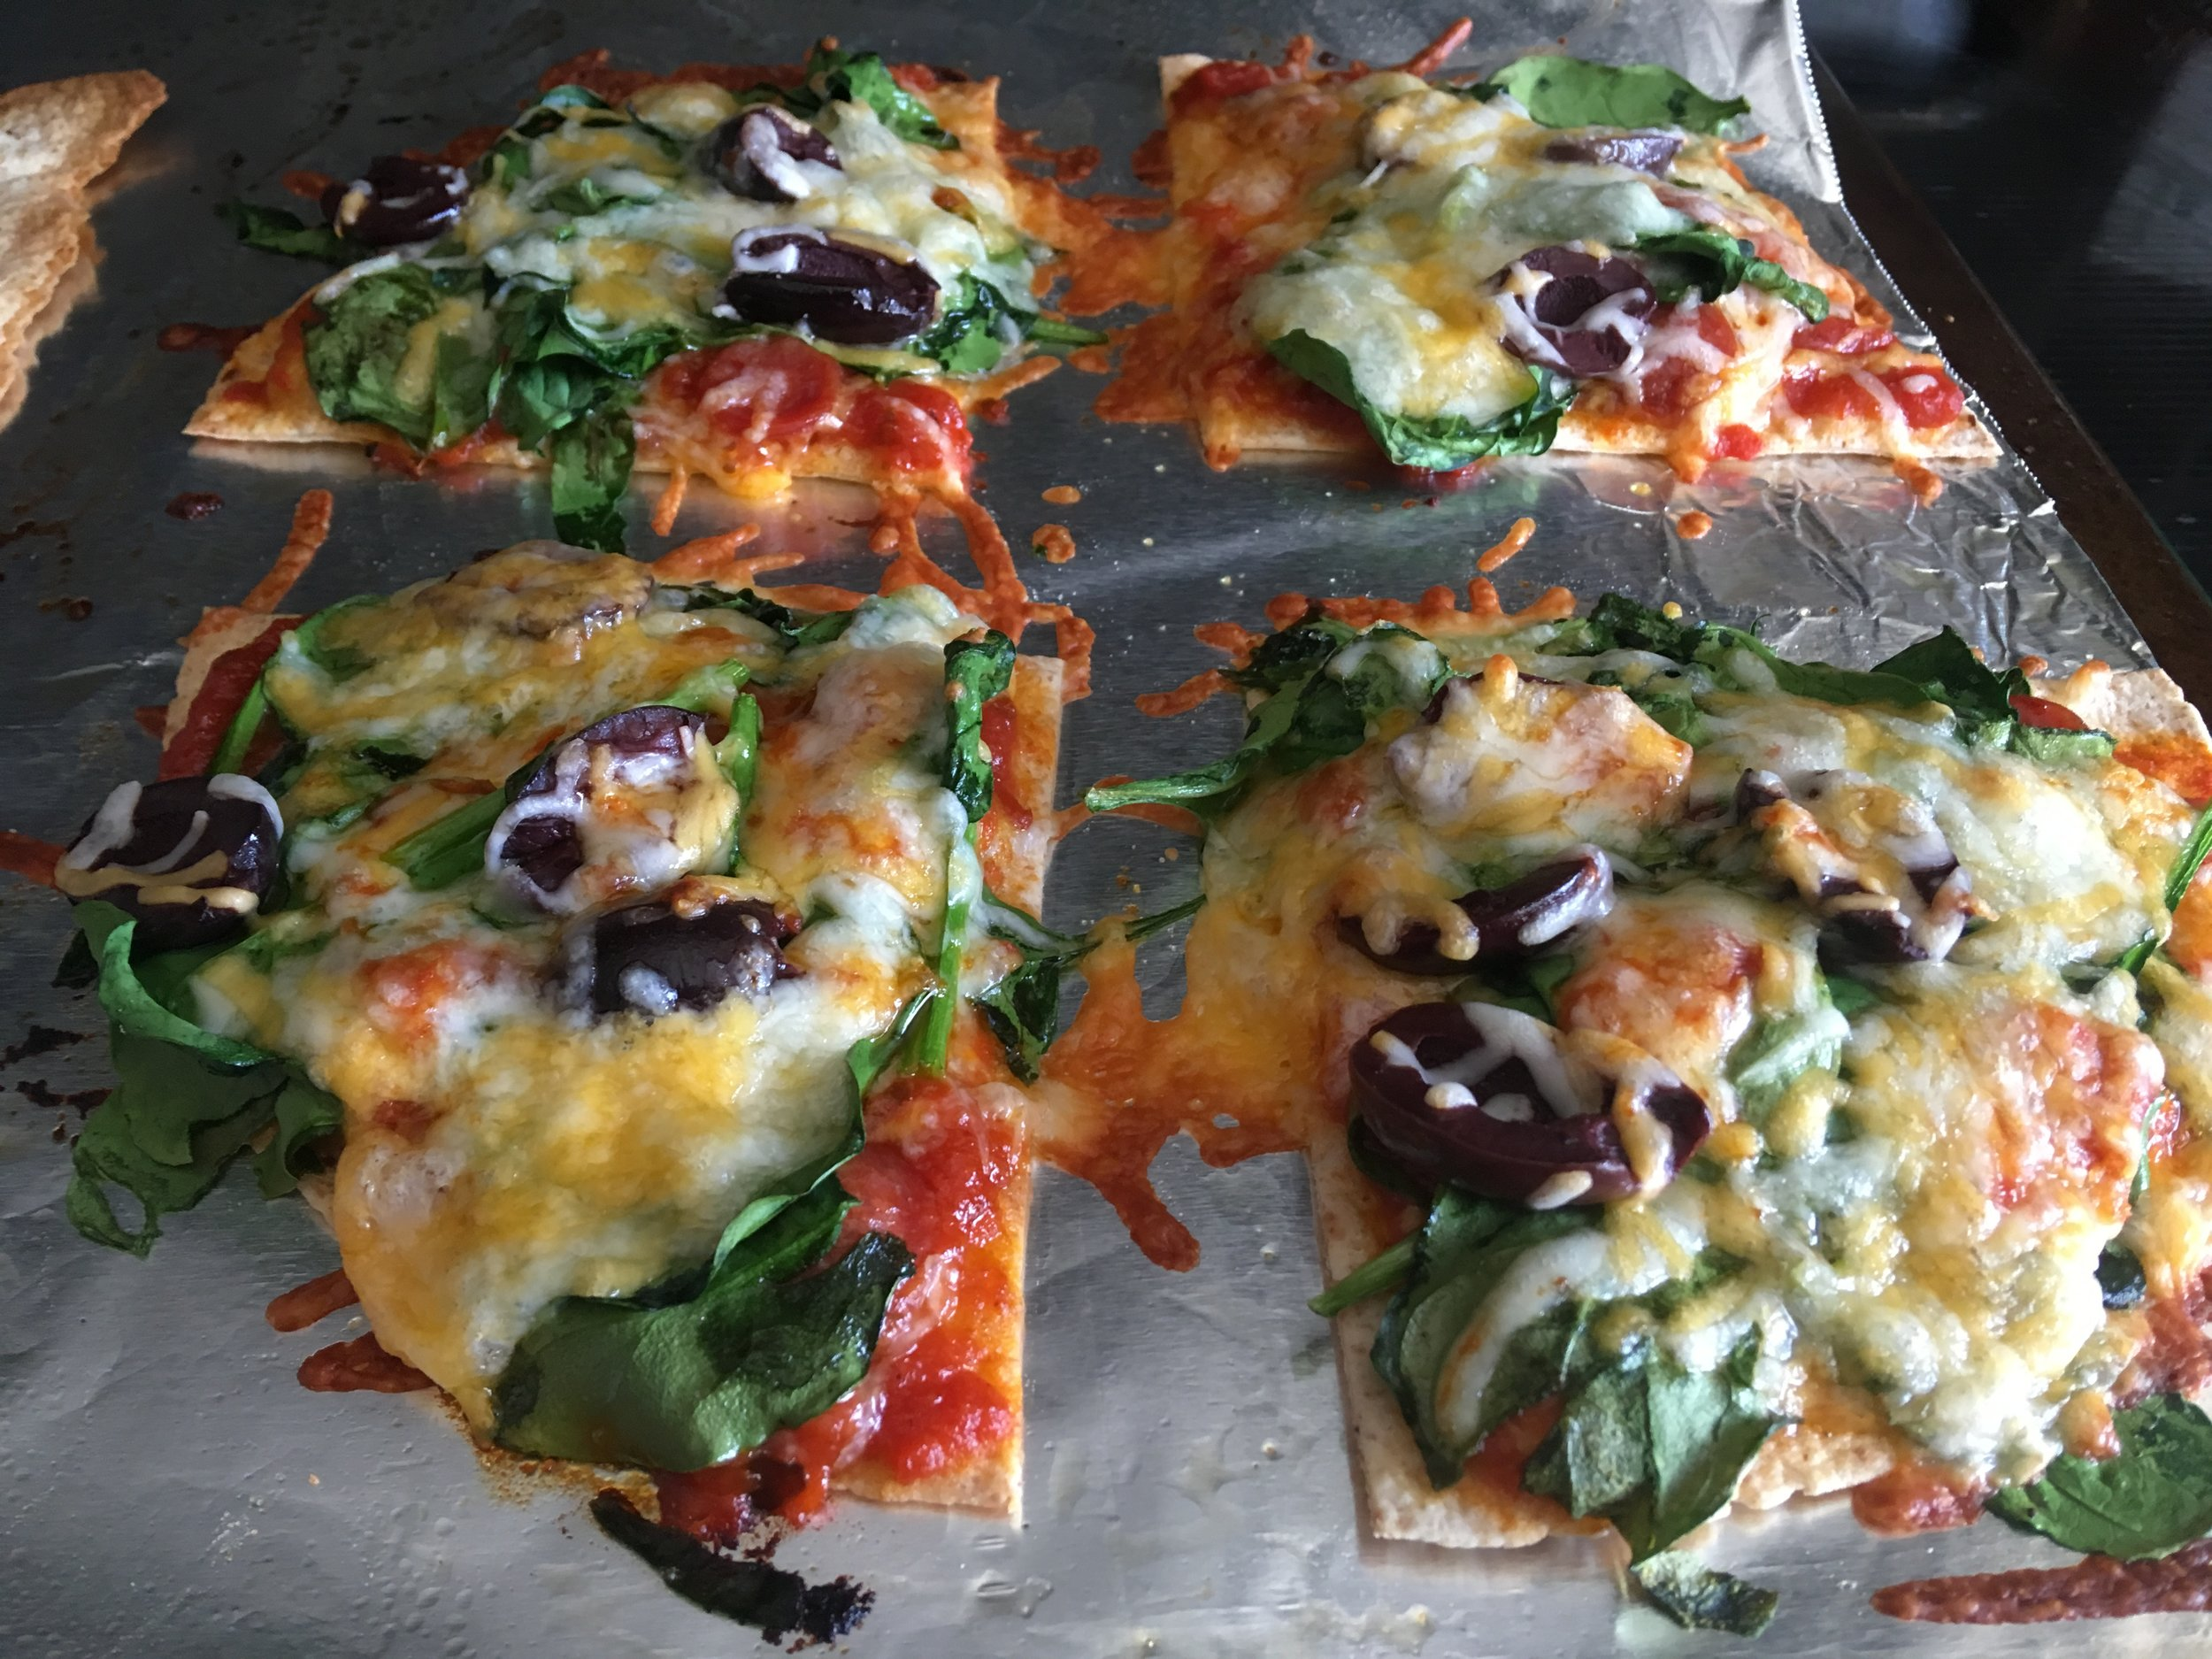 The Classic - 1 Ole Health & Wellness Tortilla1/8 cup Rao's Pizza Sauce1 serving Pepperonis1 serving Kalamata Olives1/2 cup Spinach1/2 cup Shredded Cheese